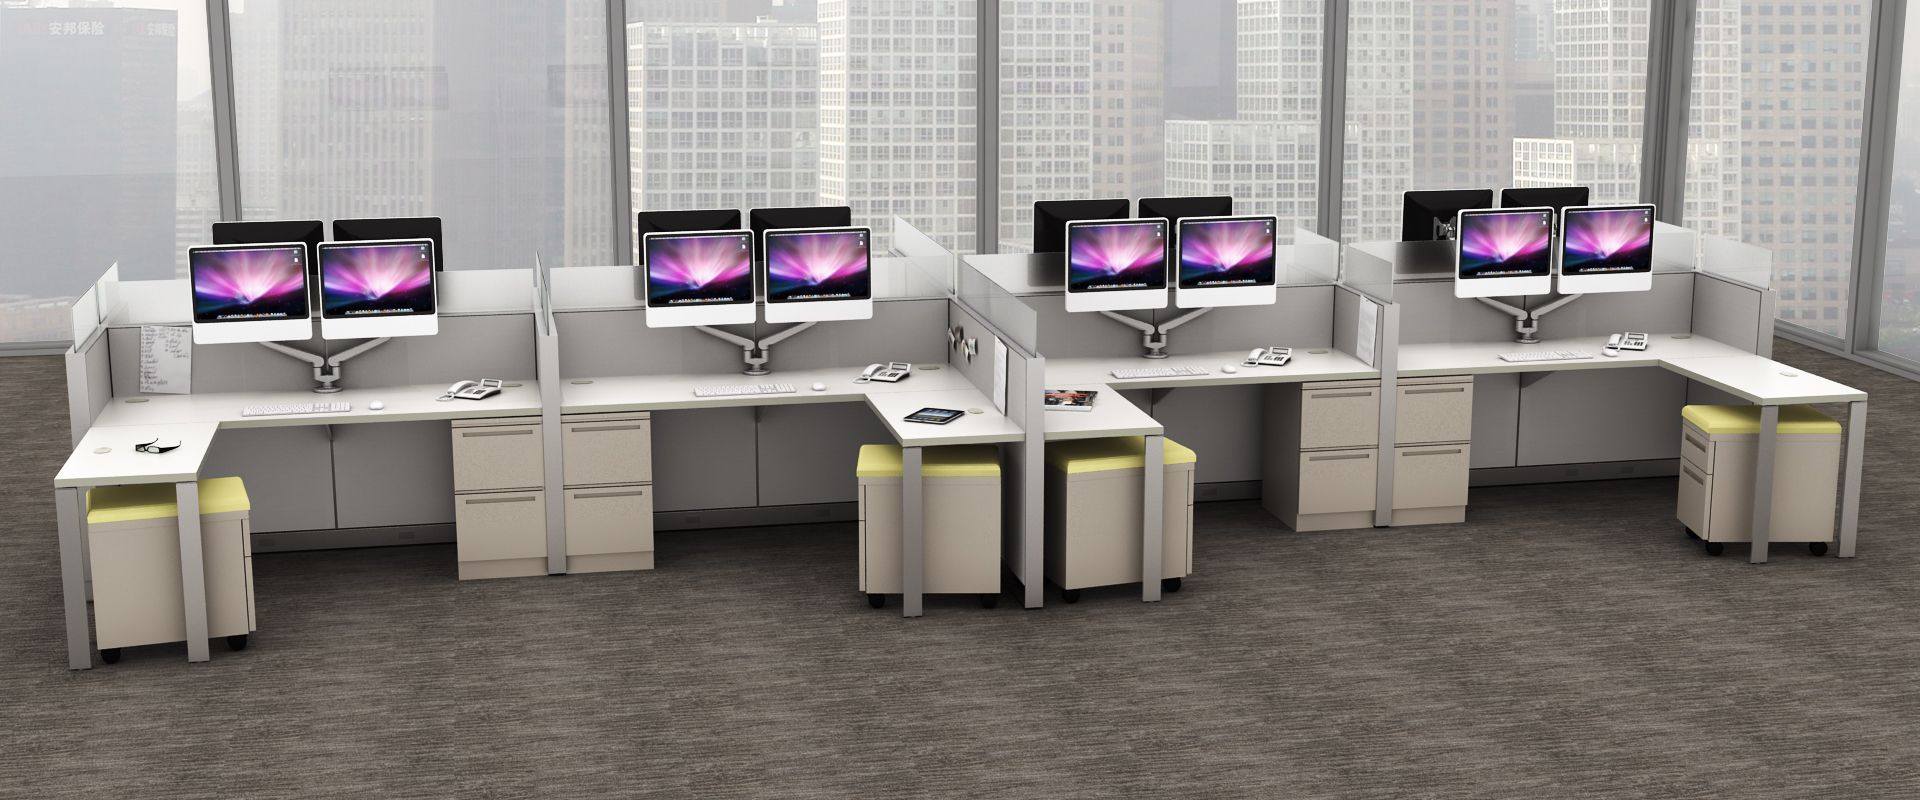 Terrace Reach 4x4 Workstations. Mobile box/file pedestal with cushion top. Shown with double monitor setup.